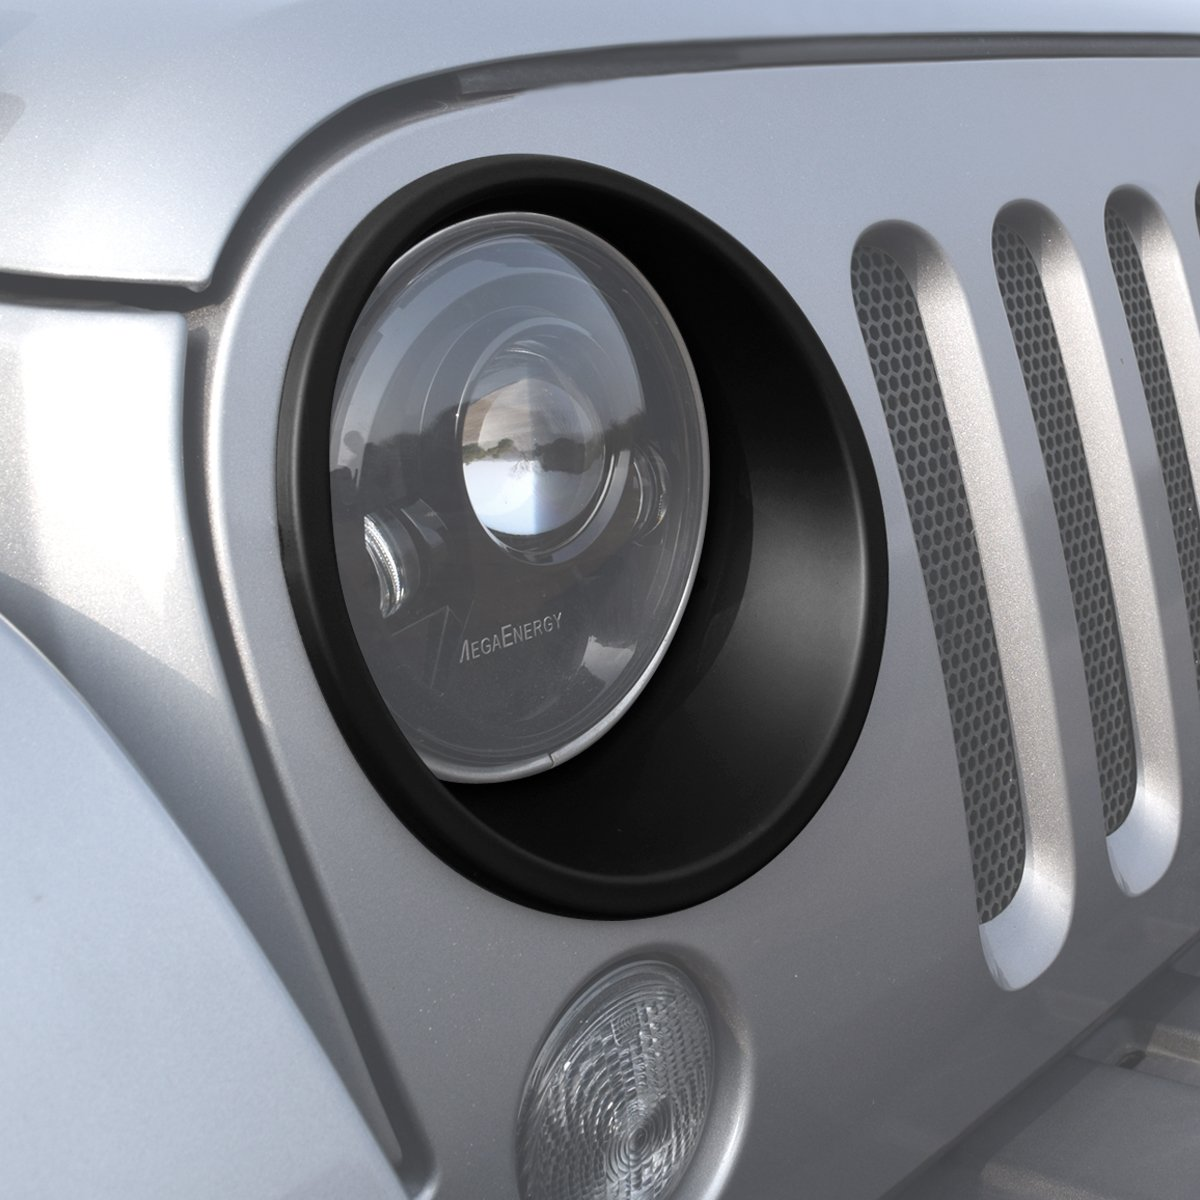 Cheap 4 Door Jeep Accessories Find Deals On Light Get Quotations Icarszone Icars Black Front Headlight Trim Cover Bezels Pair Wrangler Rubicon Sahara Sport Jk Unlimited